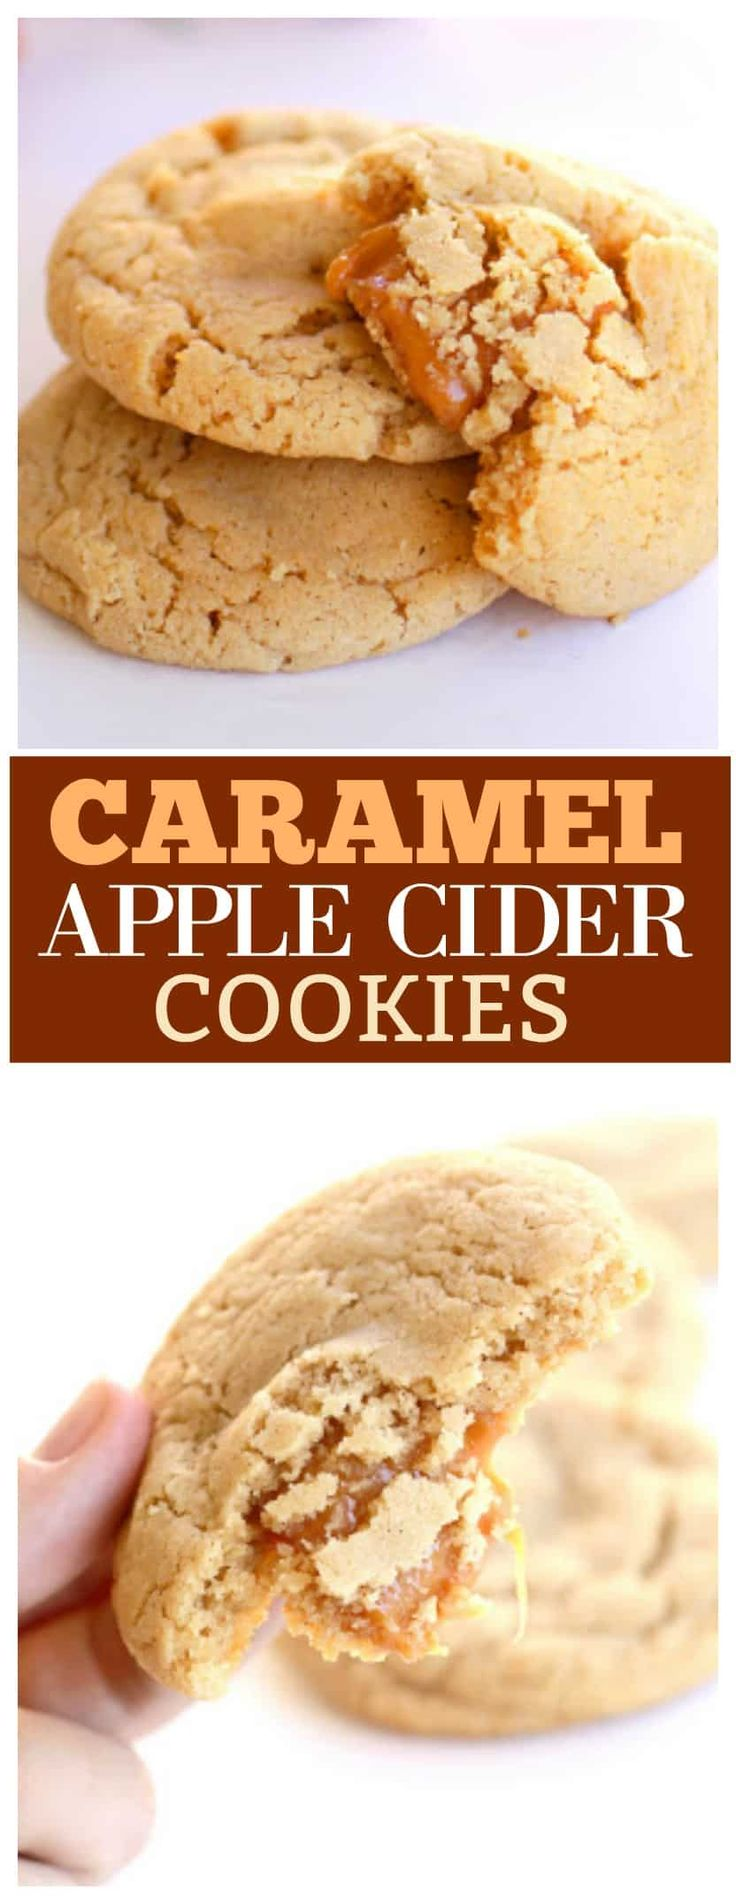 These Caramel Apple Cider Cookies are soft and che…